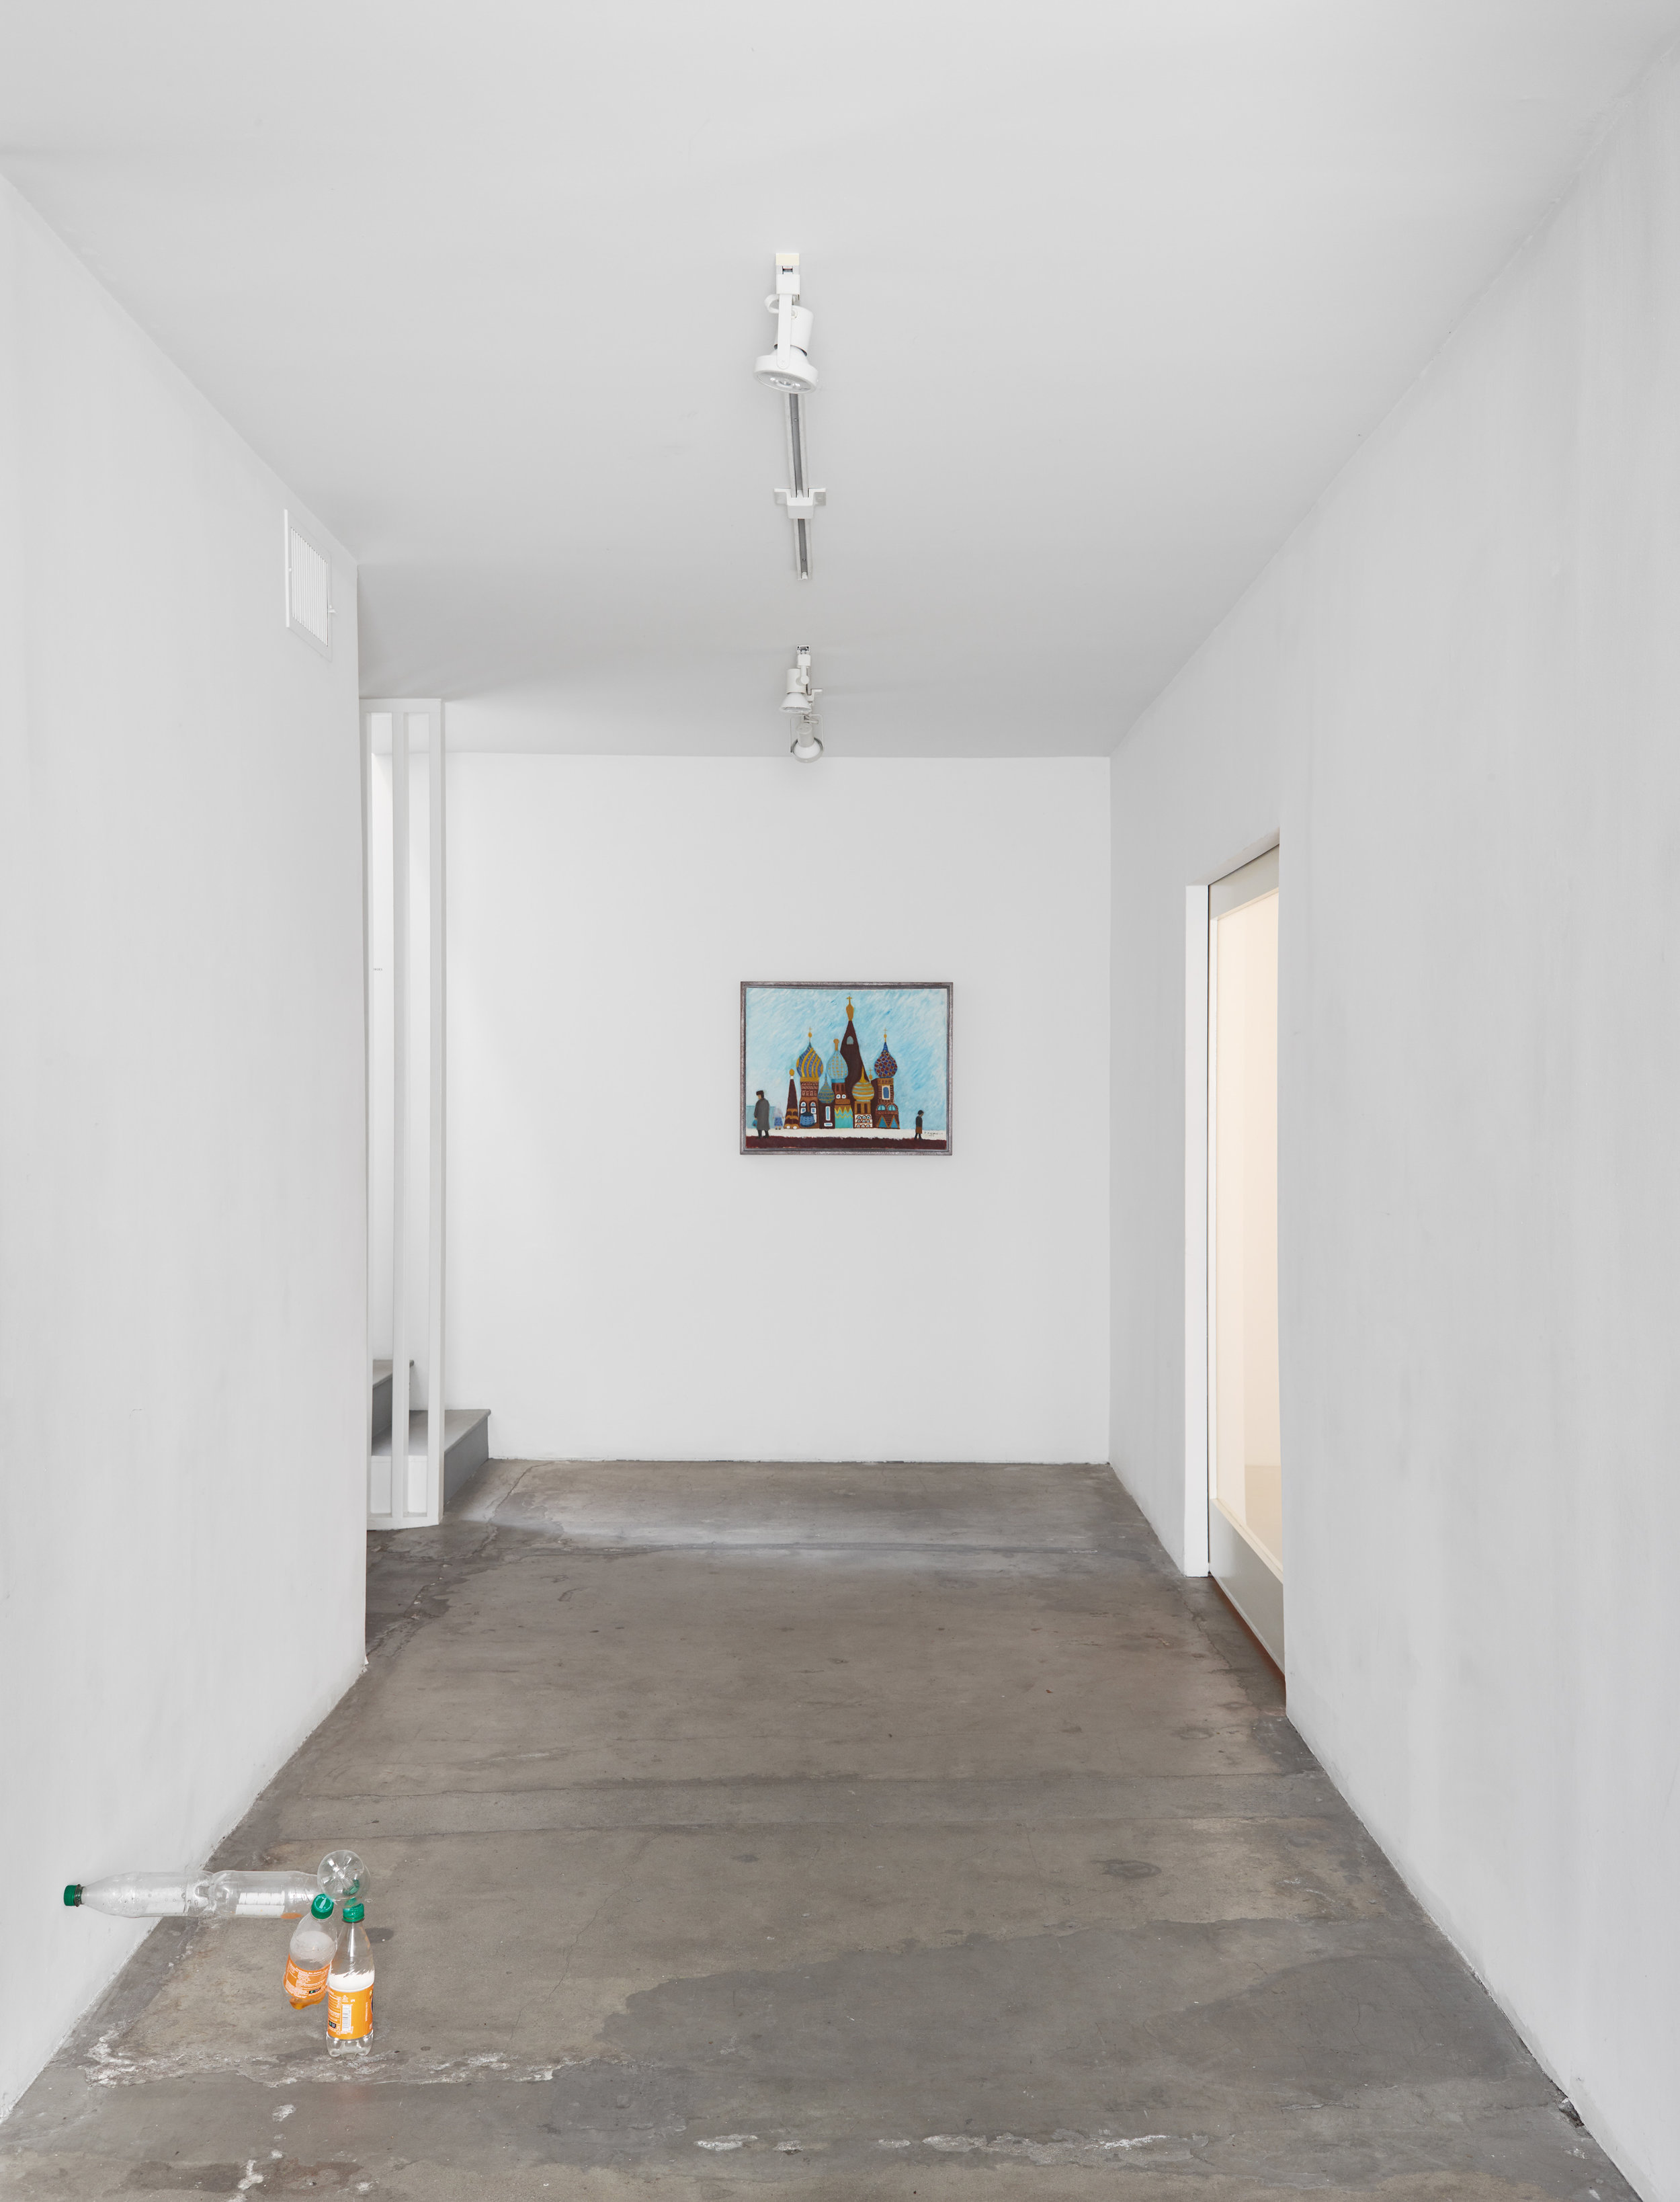 Blake Rayne, Burn It Clean, 2018. Installation view 1301PE.